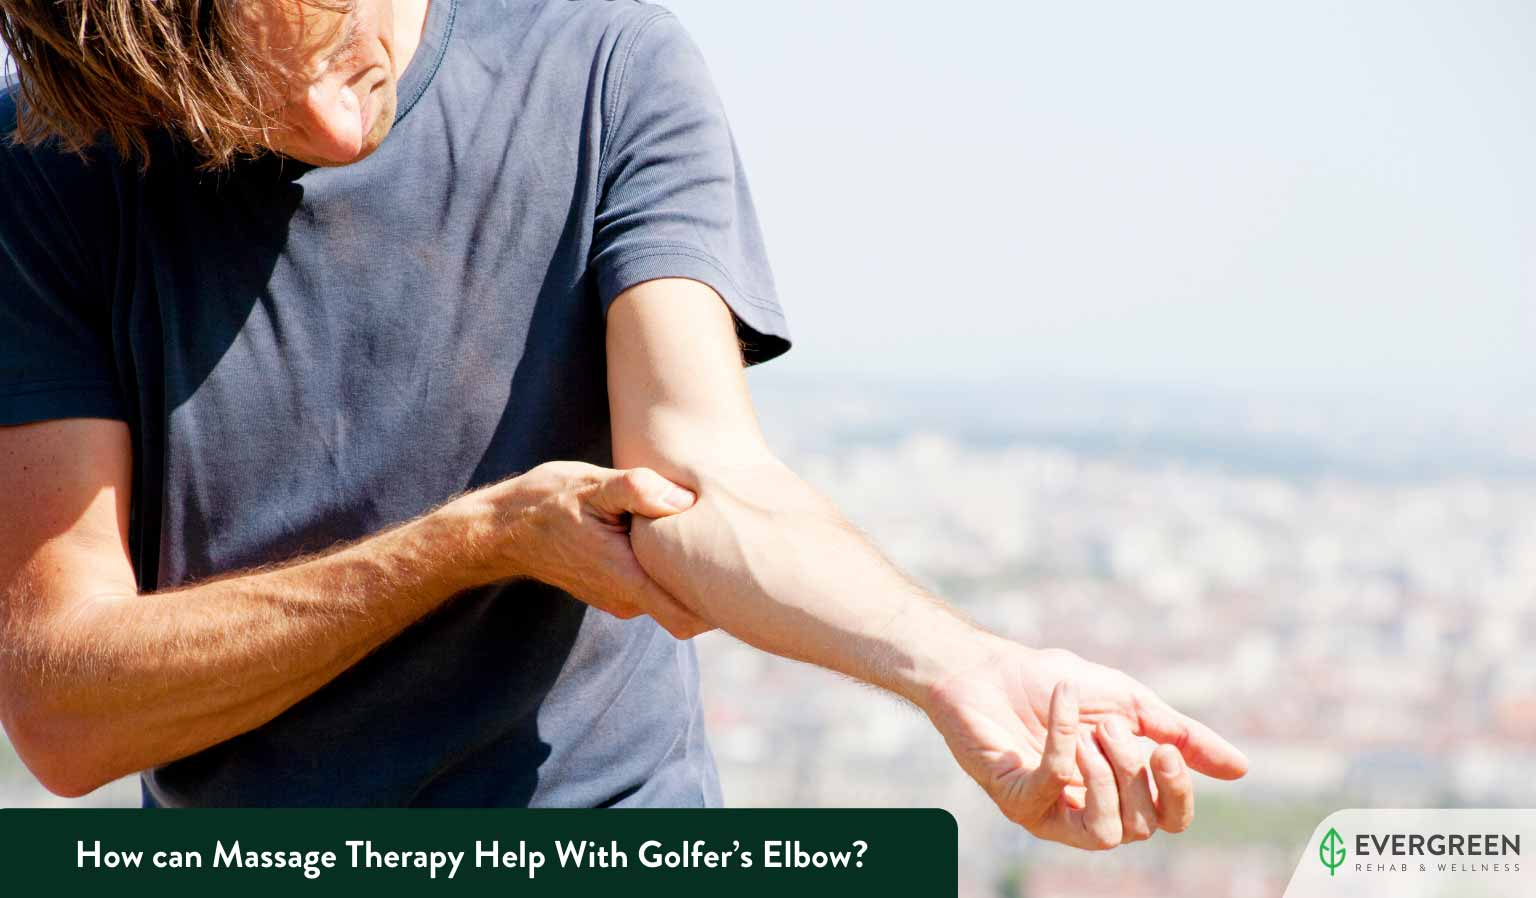 How can Massage Therapy Help With Golfer's Elbow?